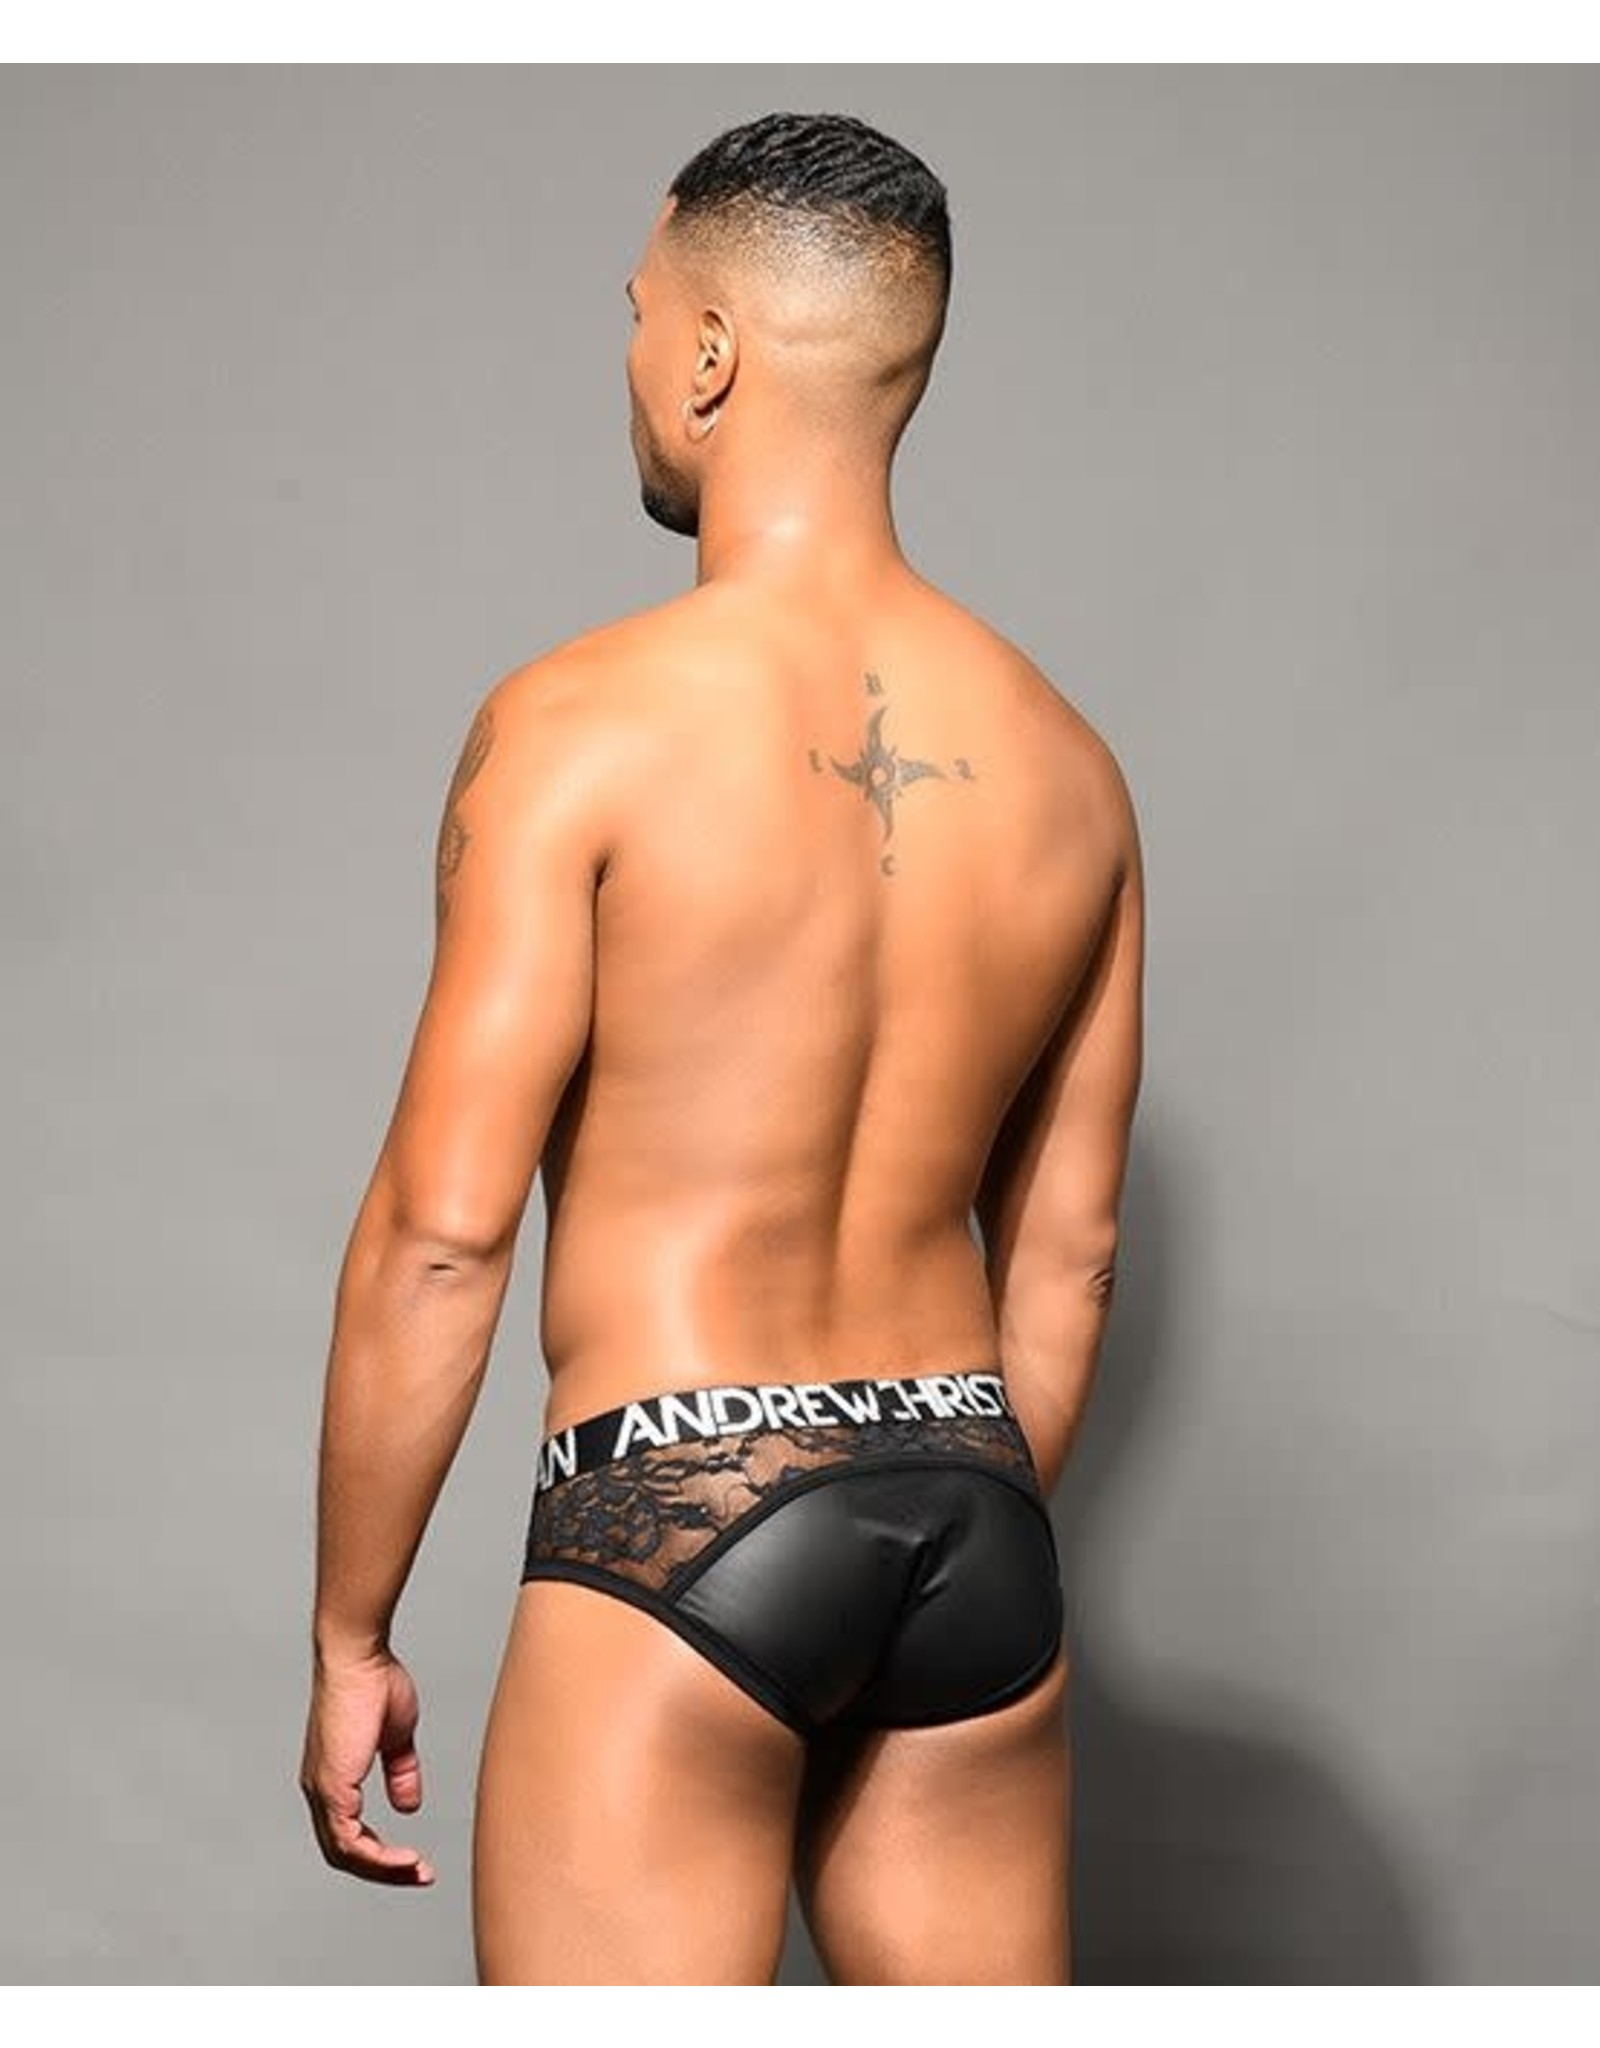 ANDREW CHRISTIAN ANDREW CHRISTIAN - NAUGHTY LACE BRIEF W/ ALMOST NAKED SMALL